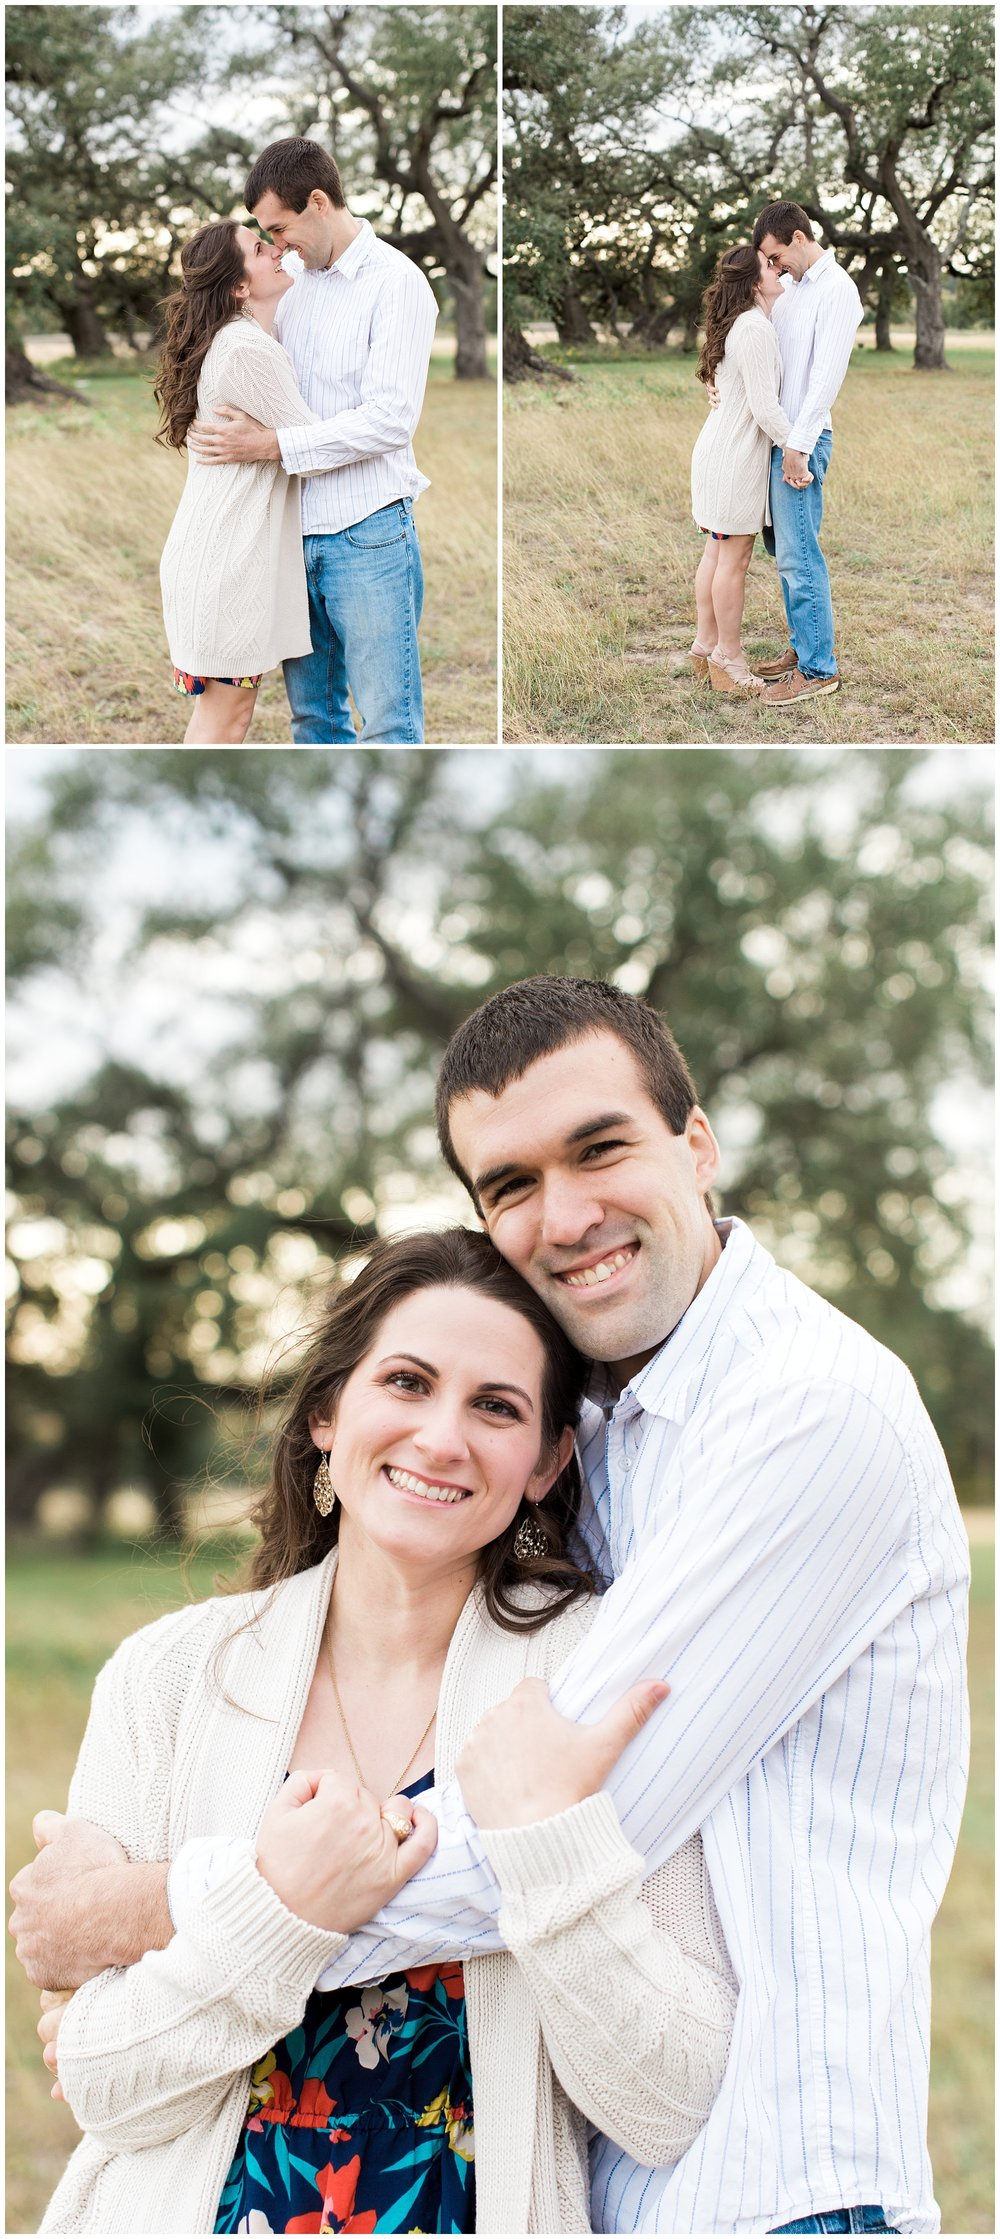 Old_Baylor_Park_Engagement_Session_0004.jpg